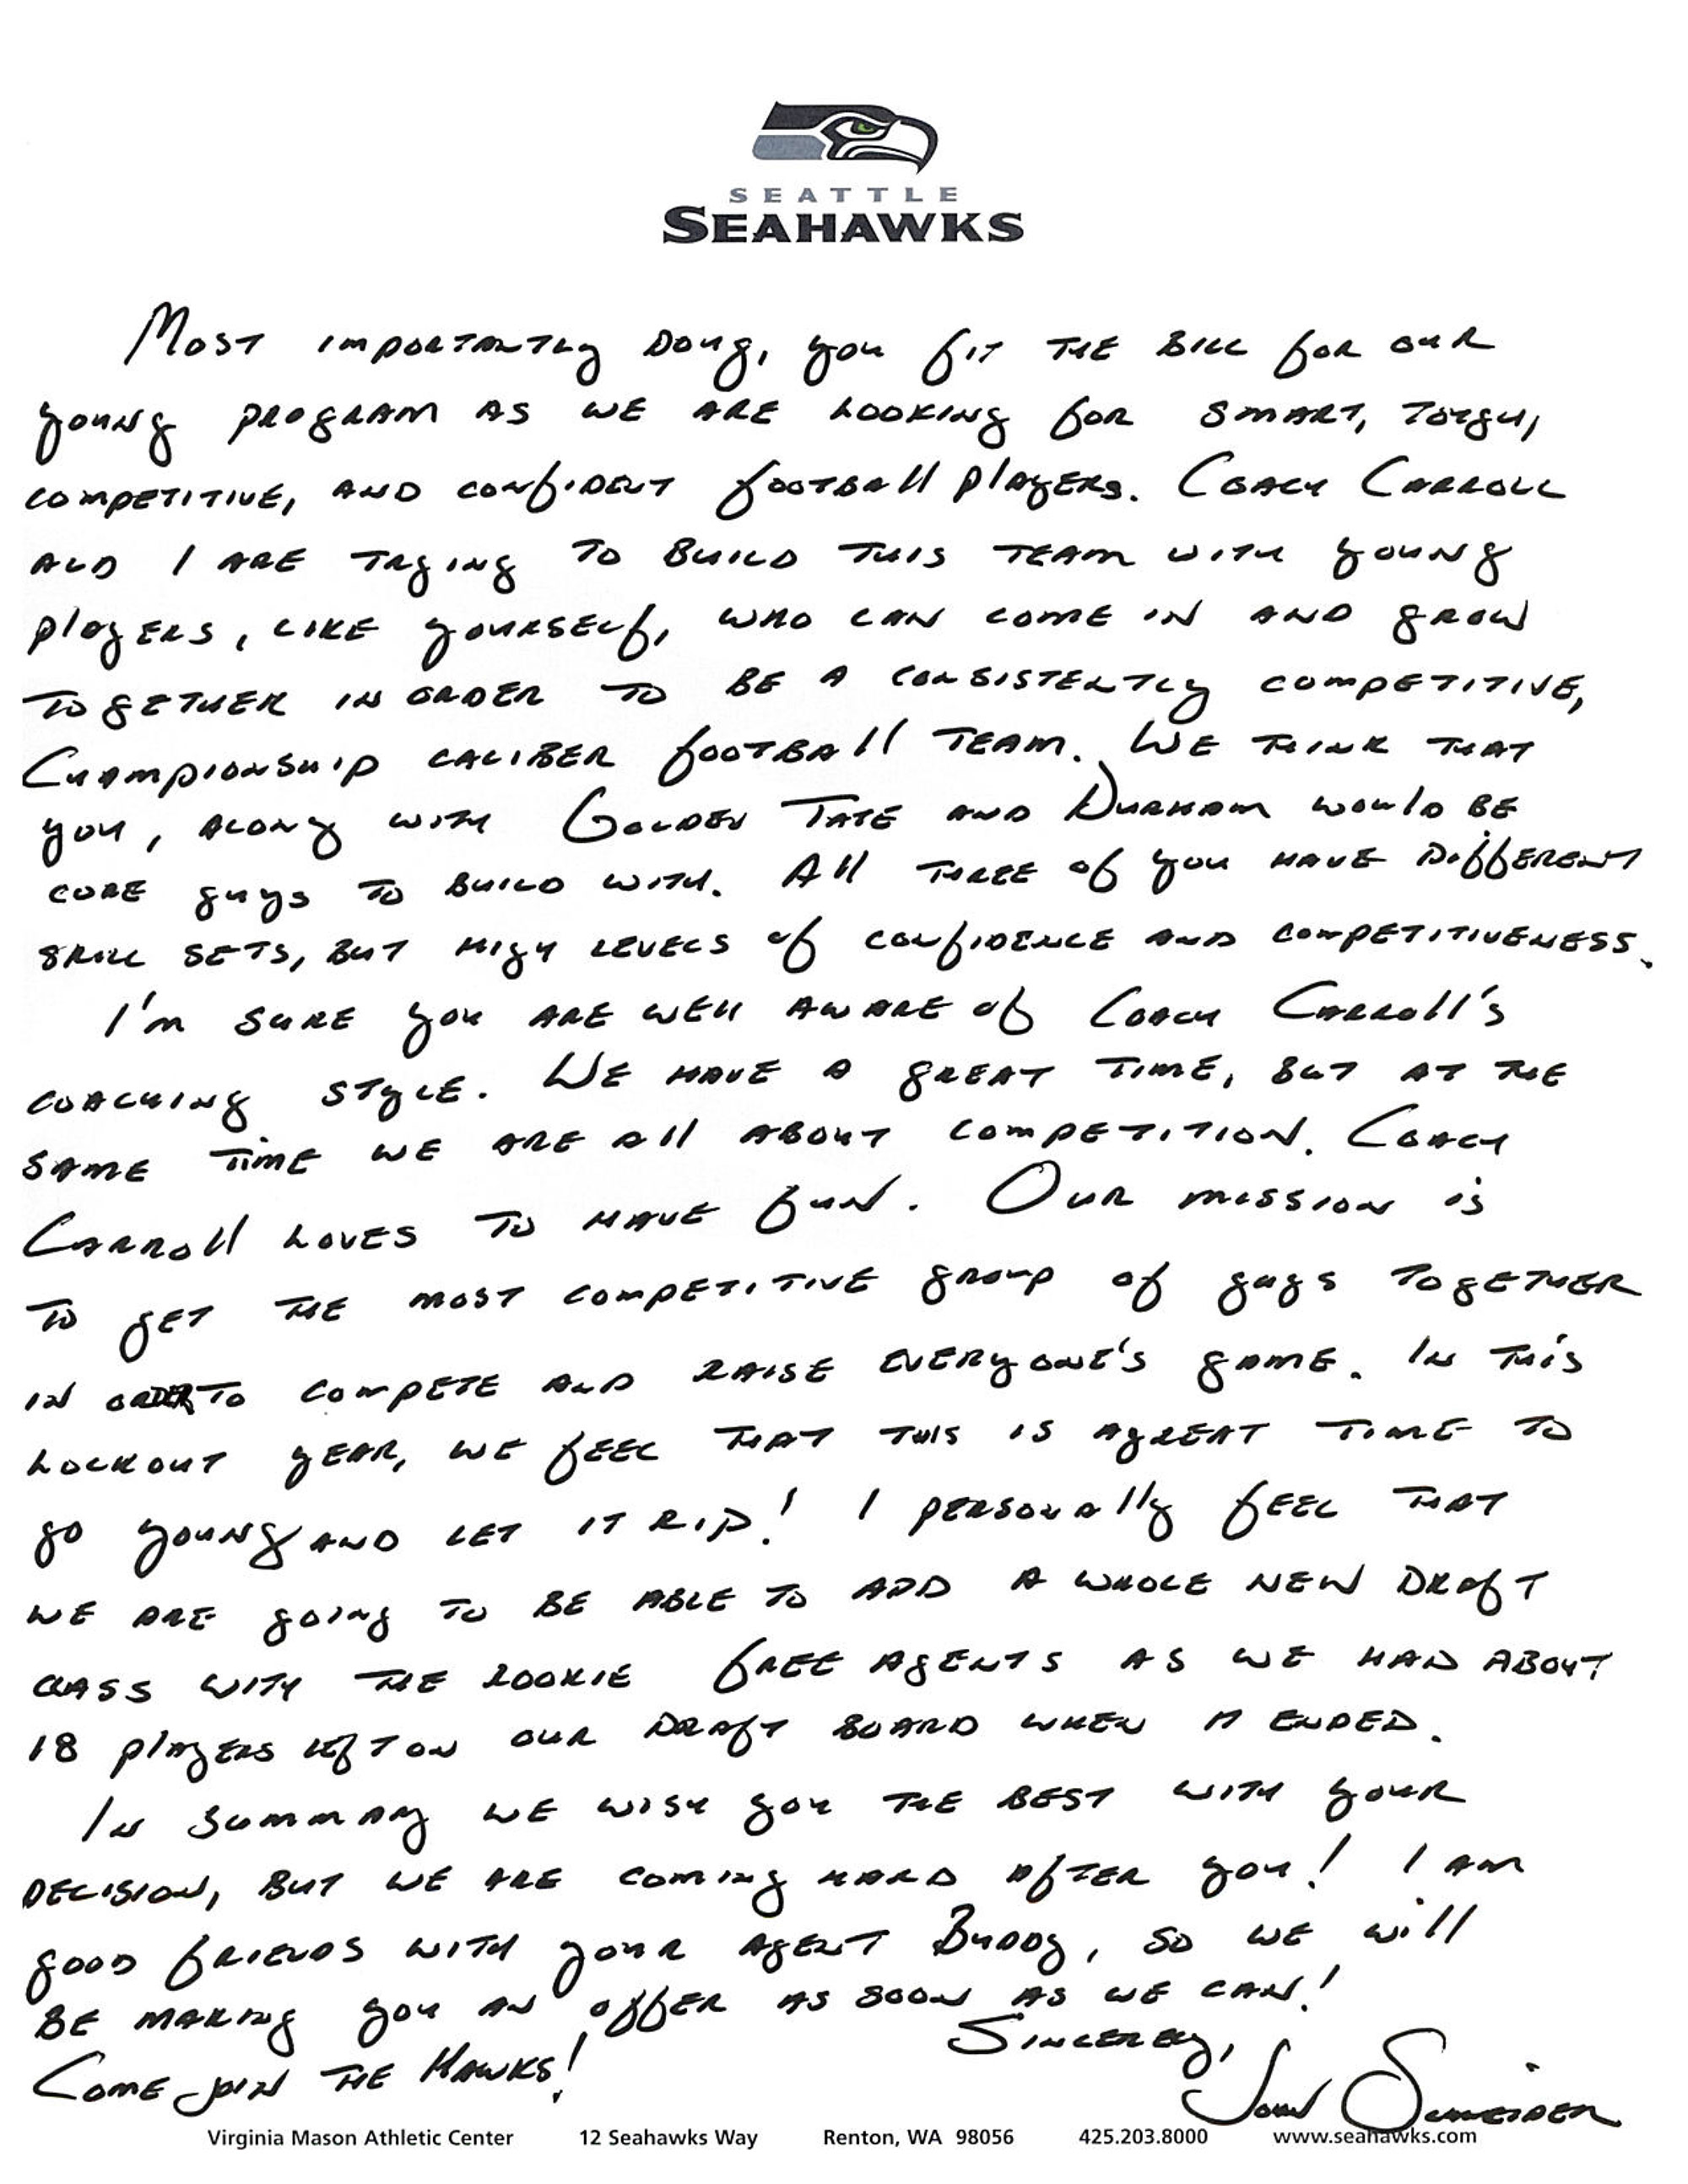 doug baldwin s letter from seahawks gm john schneider si com after baldwin went undrafted in 2011 seahawks general manager john schneider sent baldwin the following handwritten note outlining seattle s philosophy